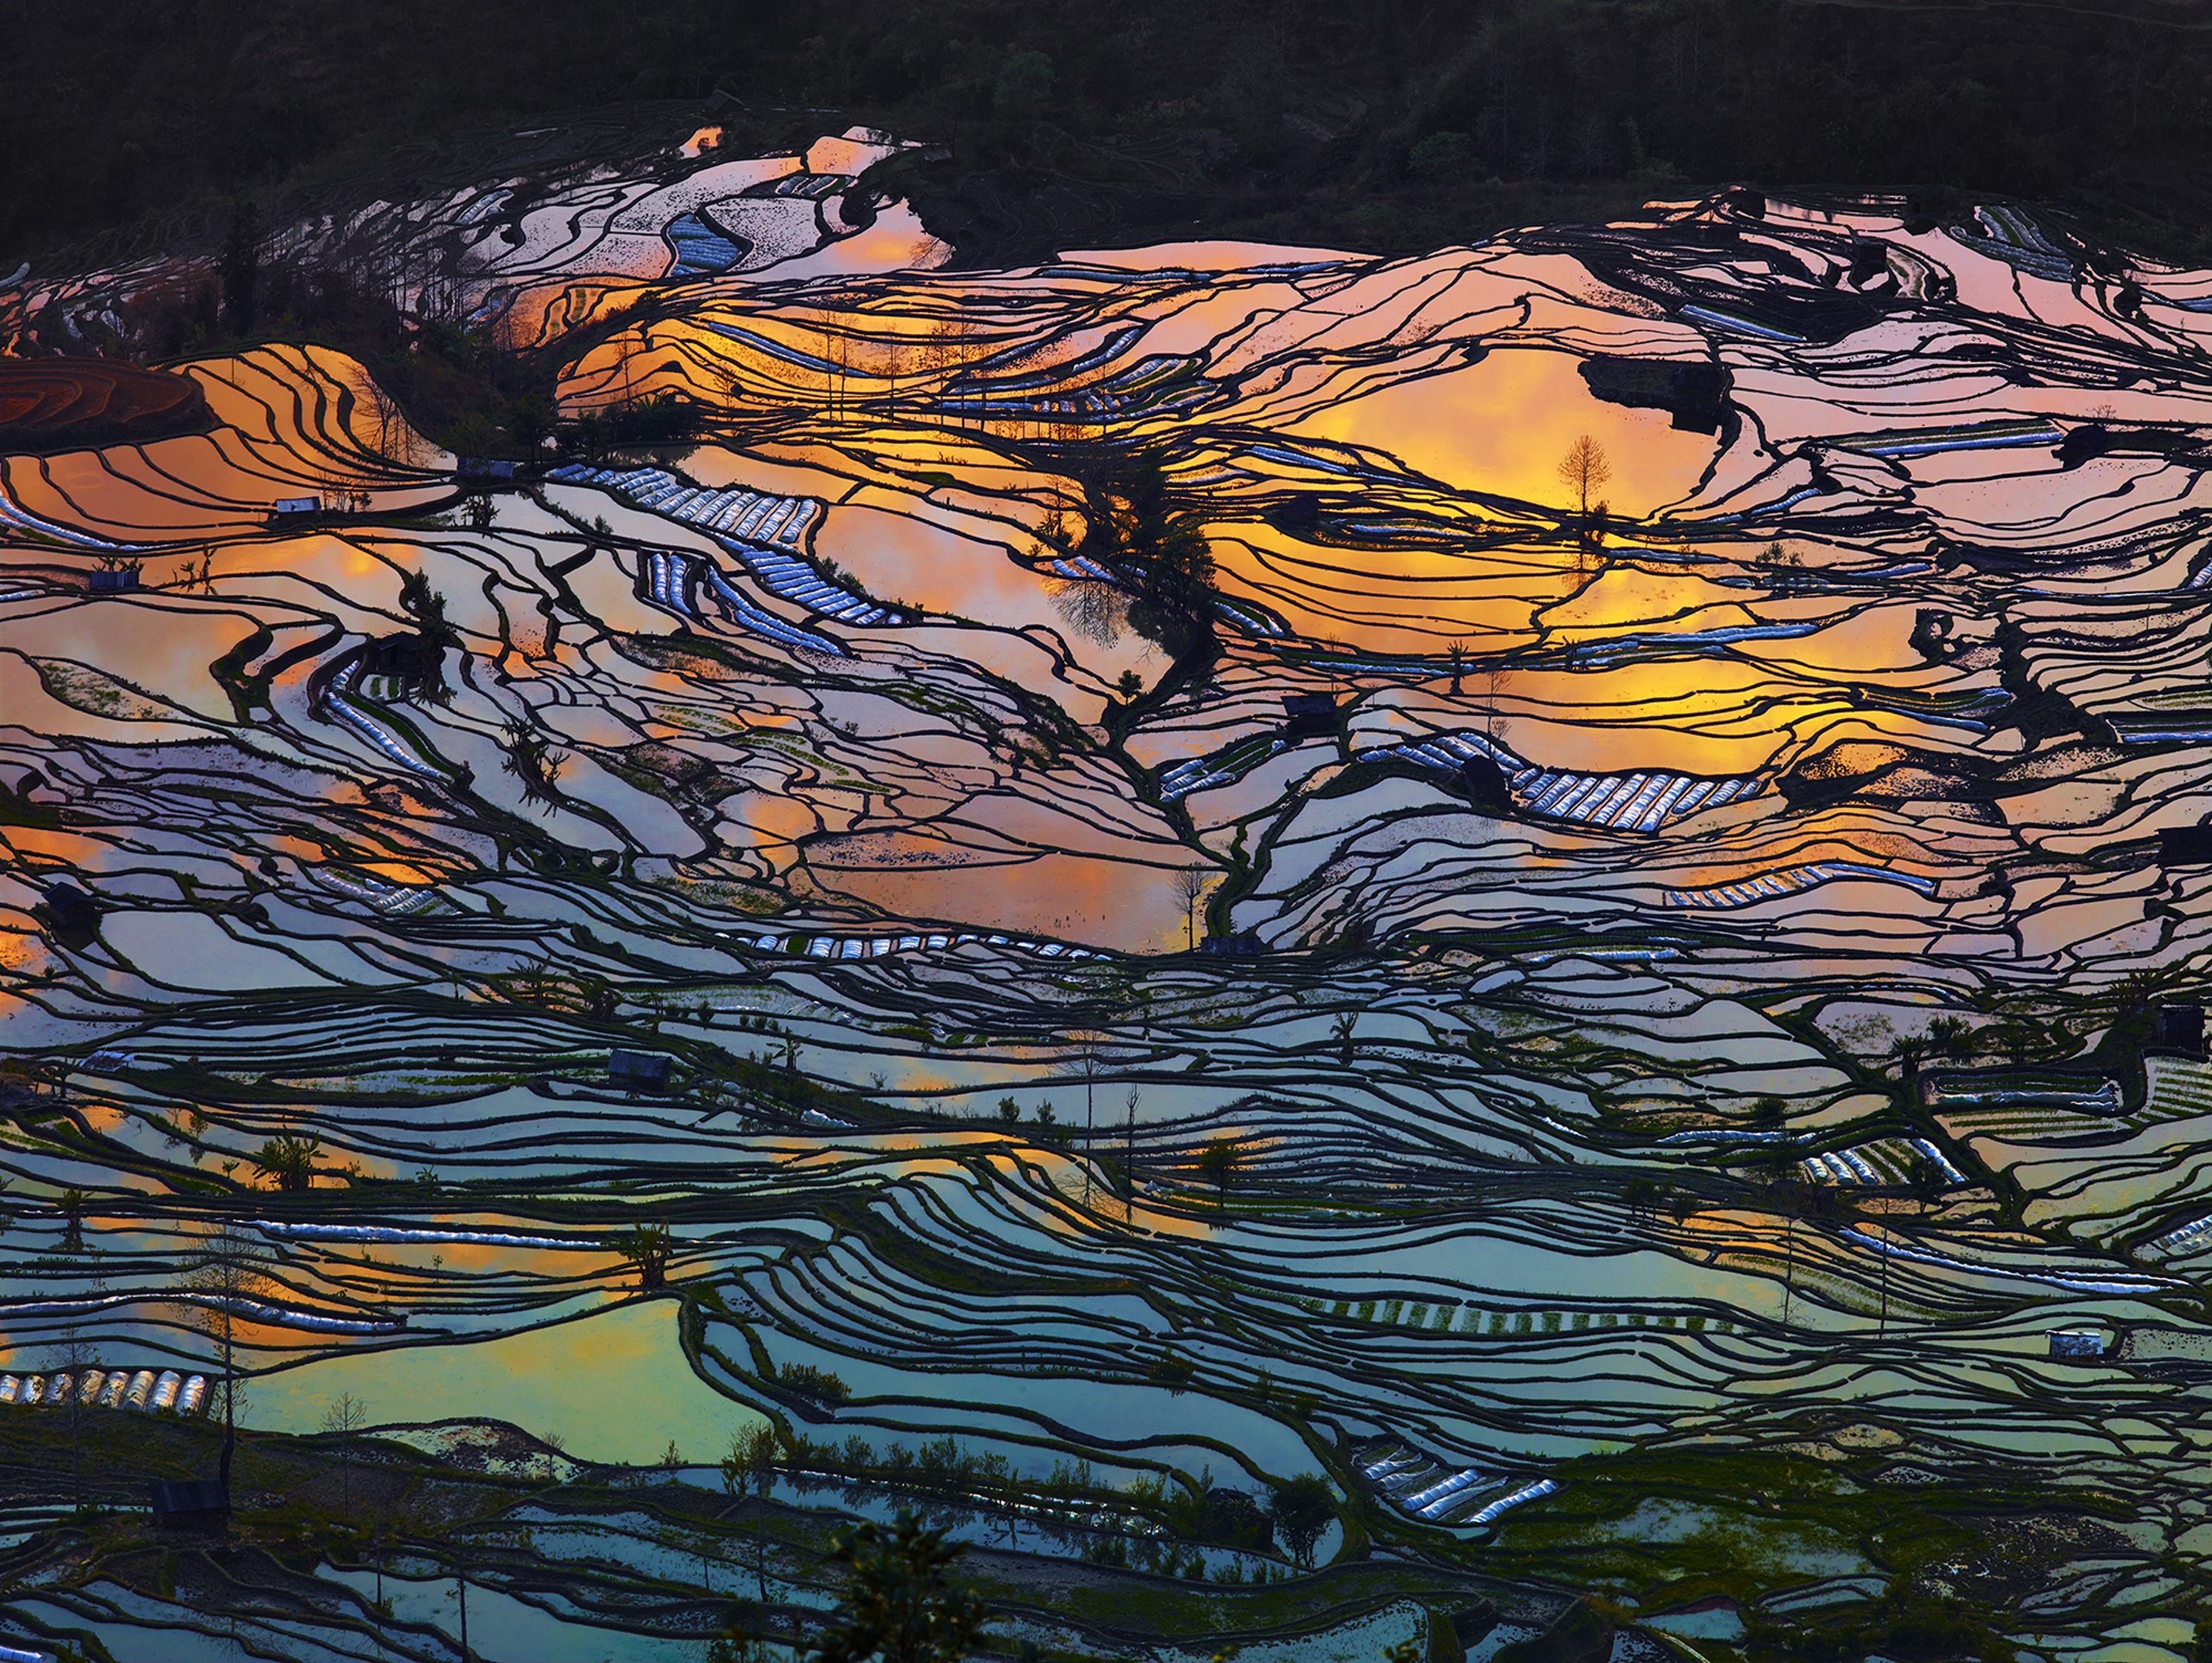 The rice terraces of Yuanyang